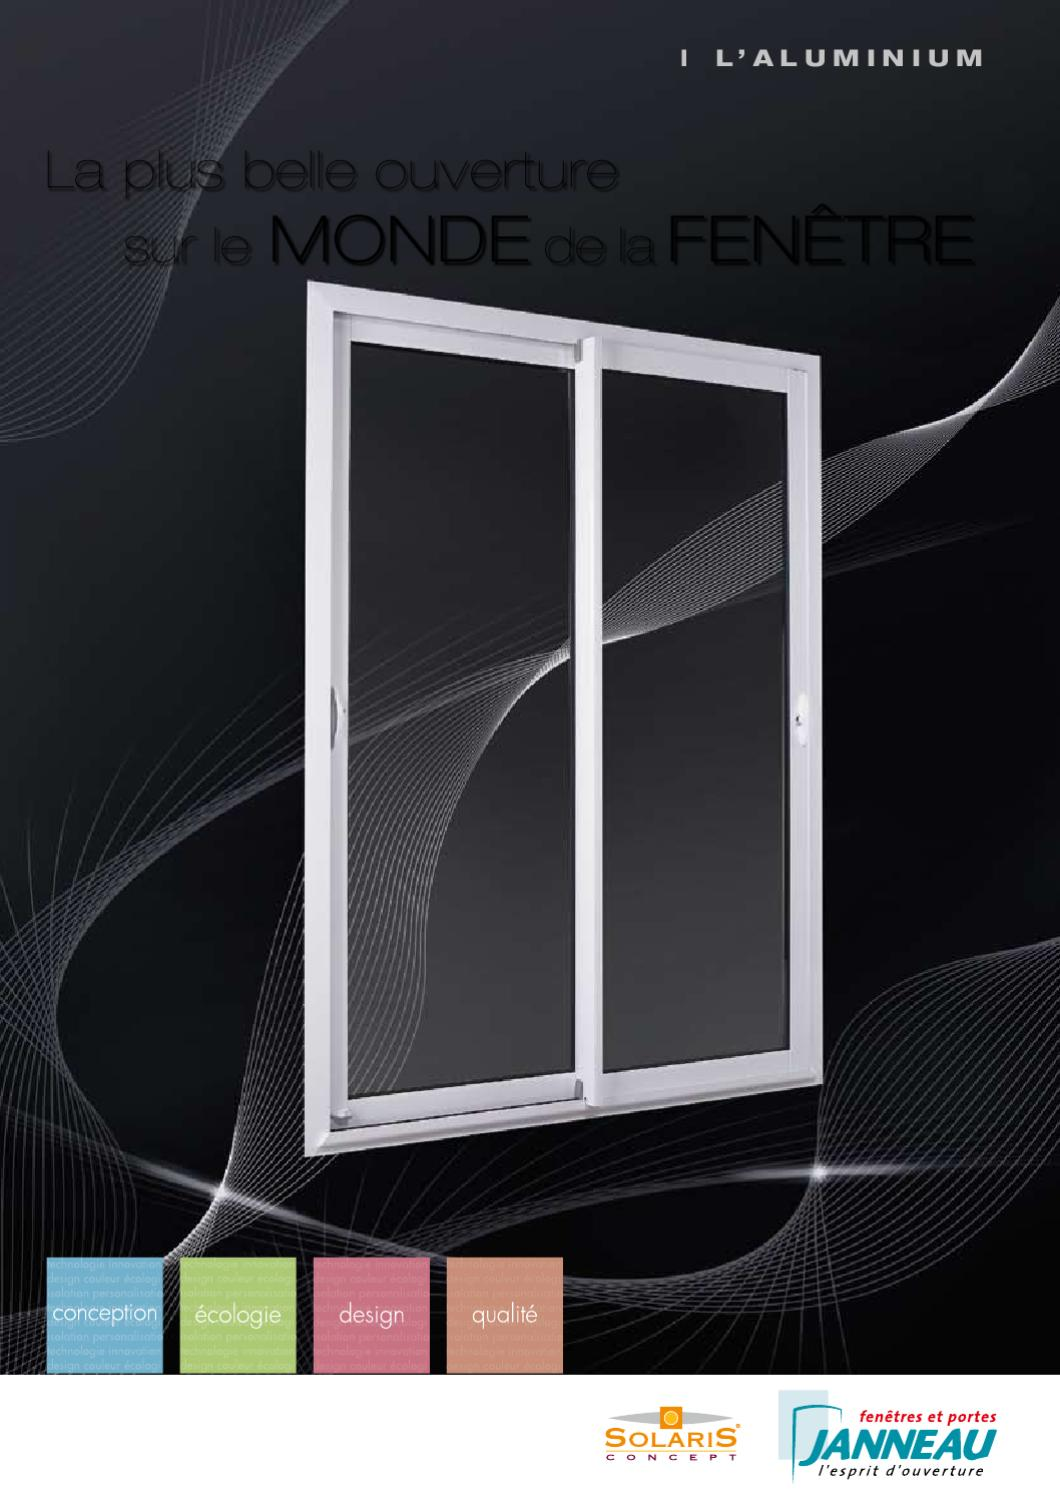 Solaris fen tres en aluminium by janneau menuiseries issuu for Fenetre solaris